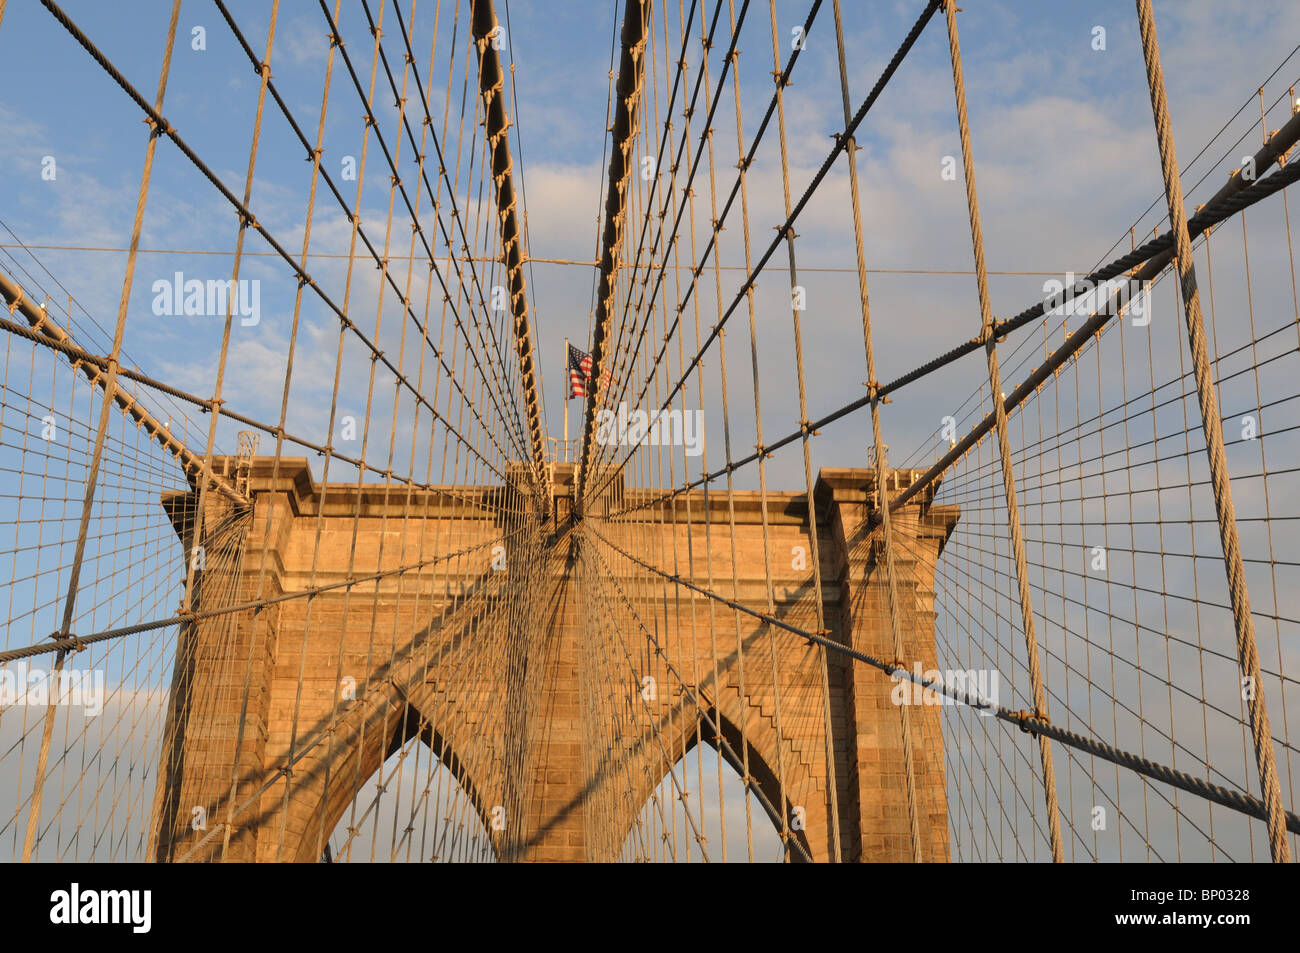 The Brooklyn Bridge spans the East River, connecting the New York City boroughs of Brooklyn and Manhattan. It dates - Stock Image